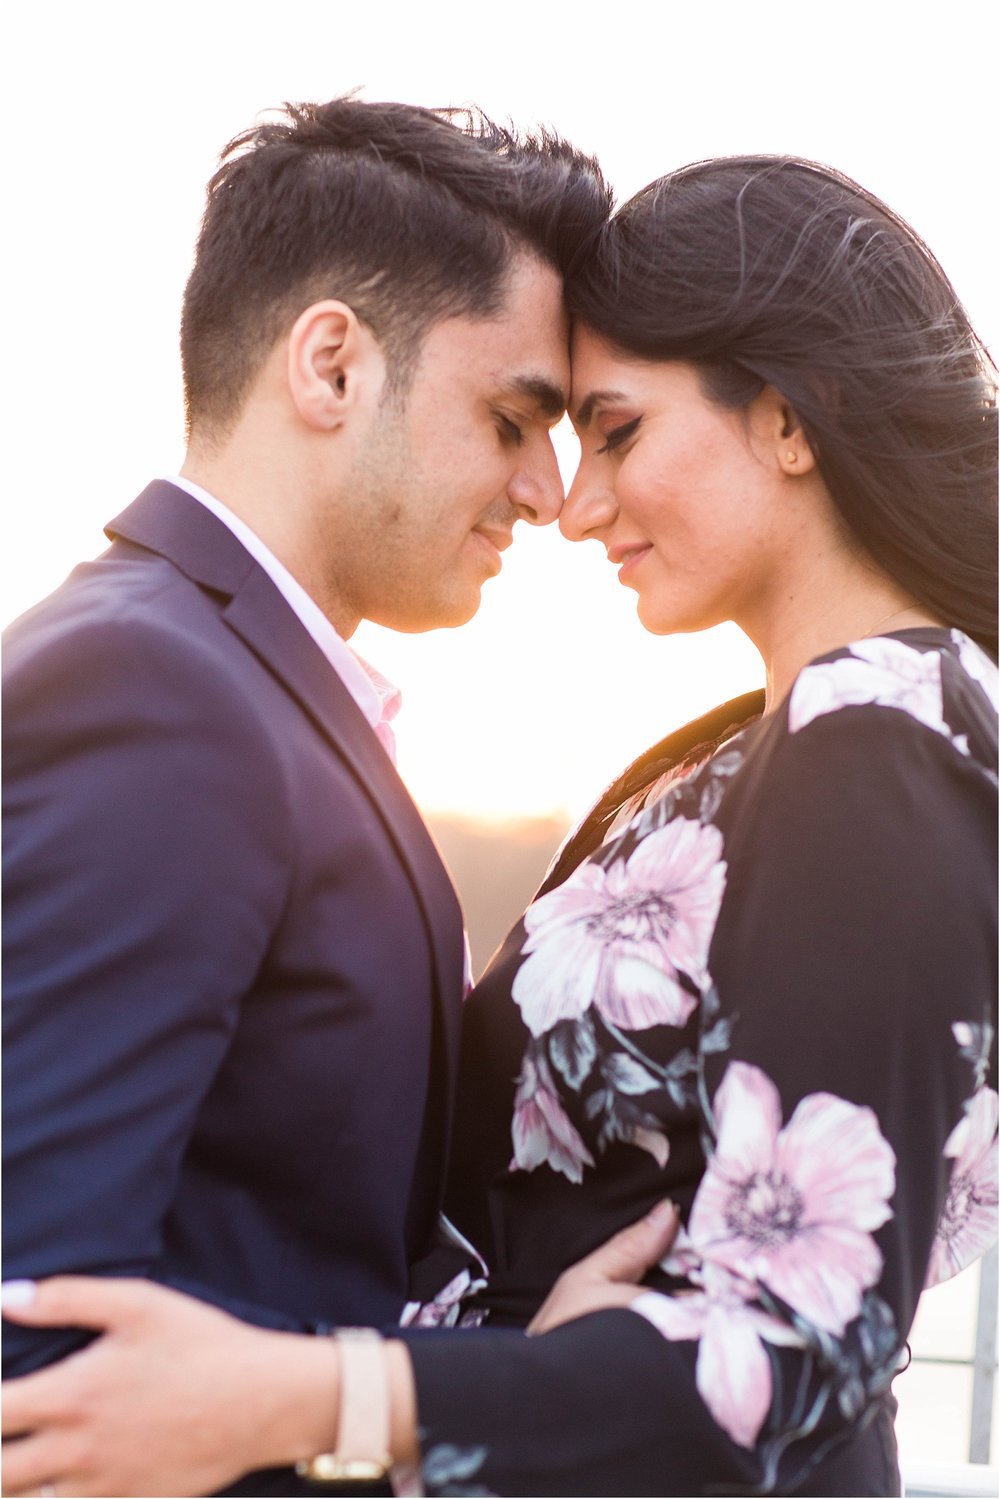 Ryerson-University-Humber-Bay-Bridge-Engagement-Session-Toronto-Mississauga-Brampton-Scarborough-GTA-Pakistani-Indian-Wedding-Engagement-Photographer-Photography_0030.jpg